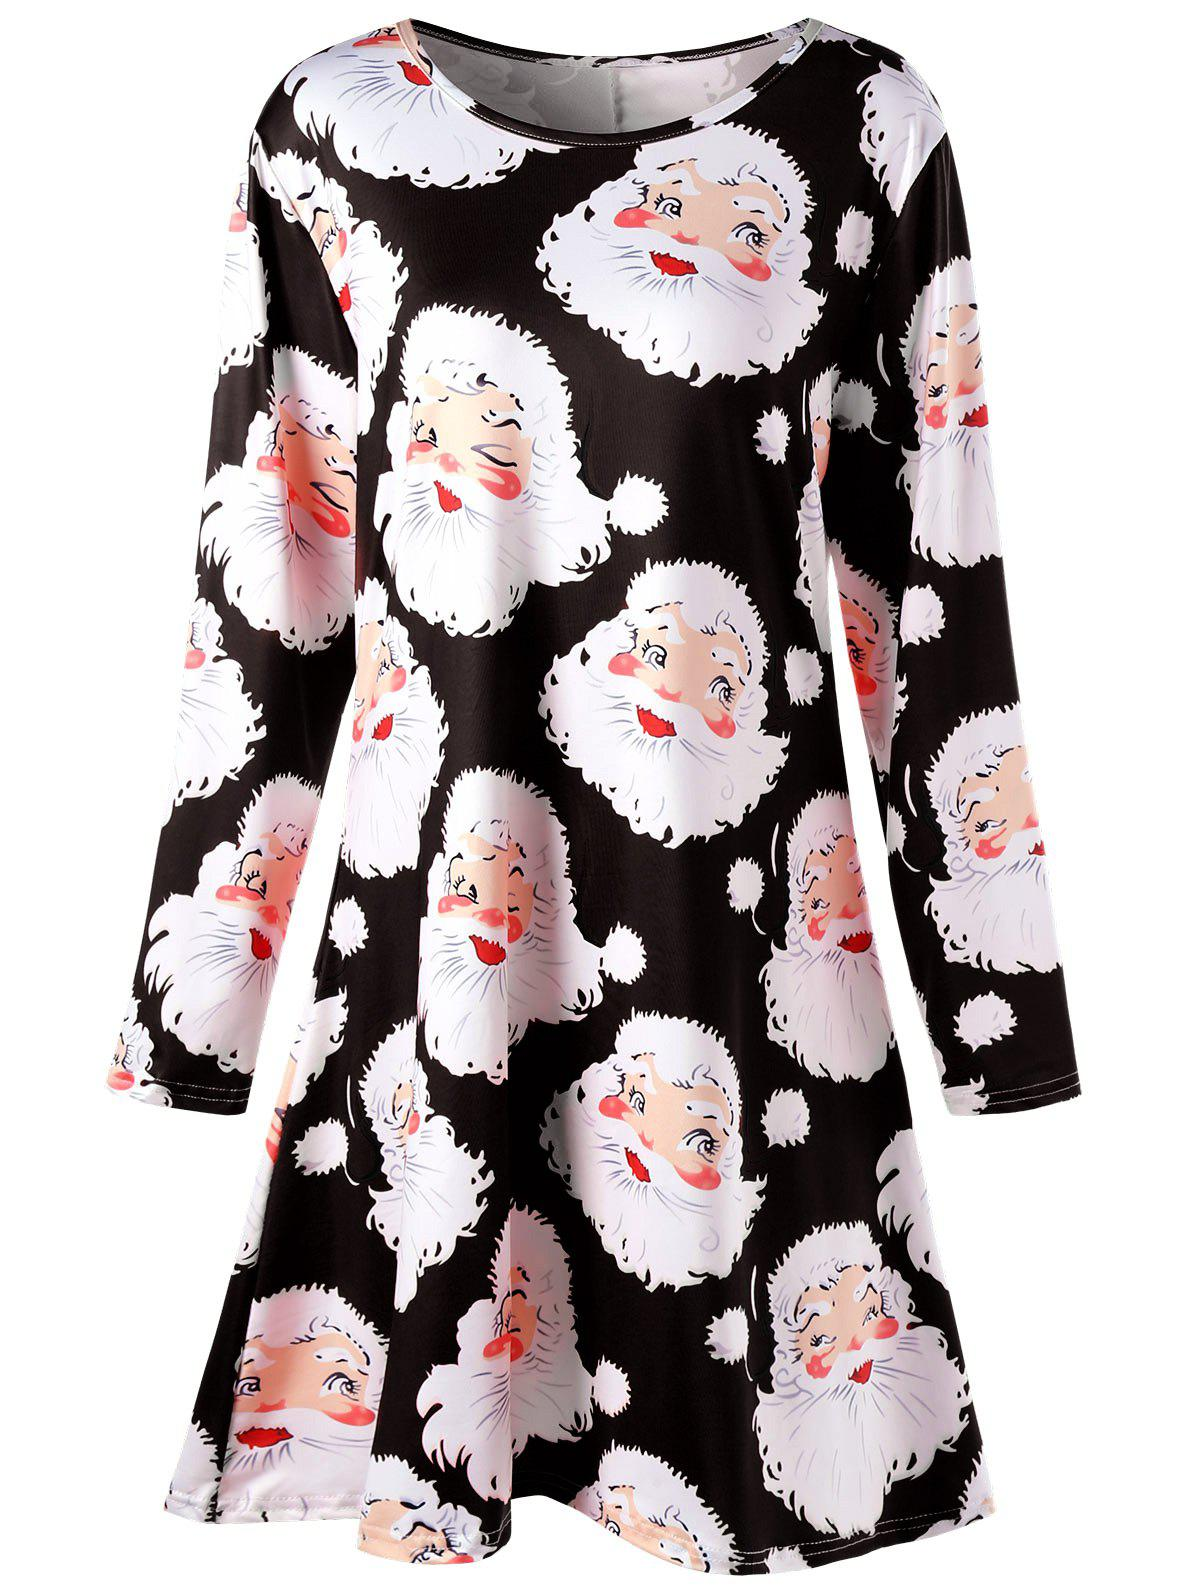 Santa Claus Print Mini Plus Size Swing Skater DressWOMEN<br><br>Size: 3XL; Color: BLACK; Style: Brief; Material: Polyester,Spandex; Silhouette: A-Line; Dresses Length: Mini; Neckline: Round Collar; Sleeve Length: Long Sleeves; Pattern Type: Print; With Belt: No; Season: Fall,Spring; Weight: 0.4200kg; Package Contents: 1 x Dress;